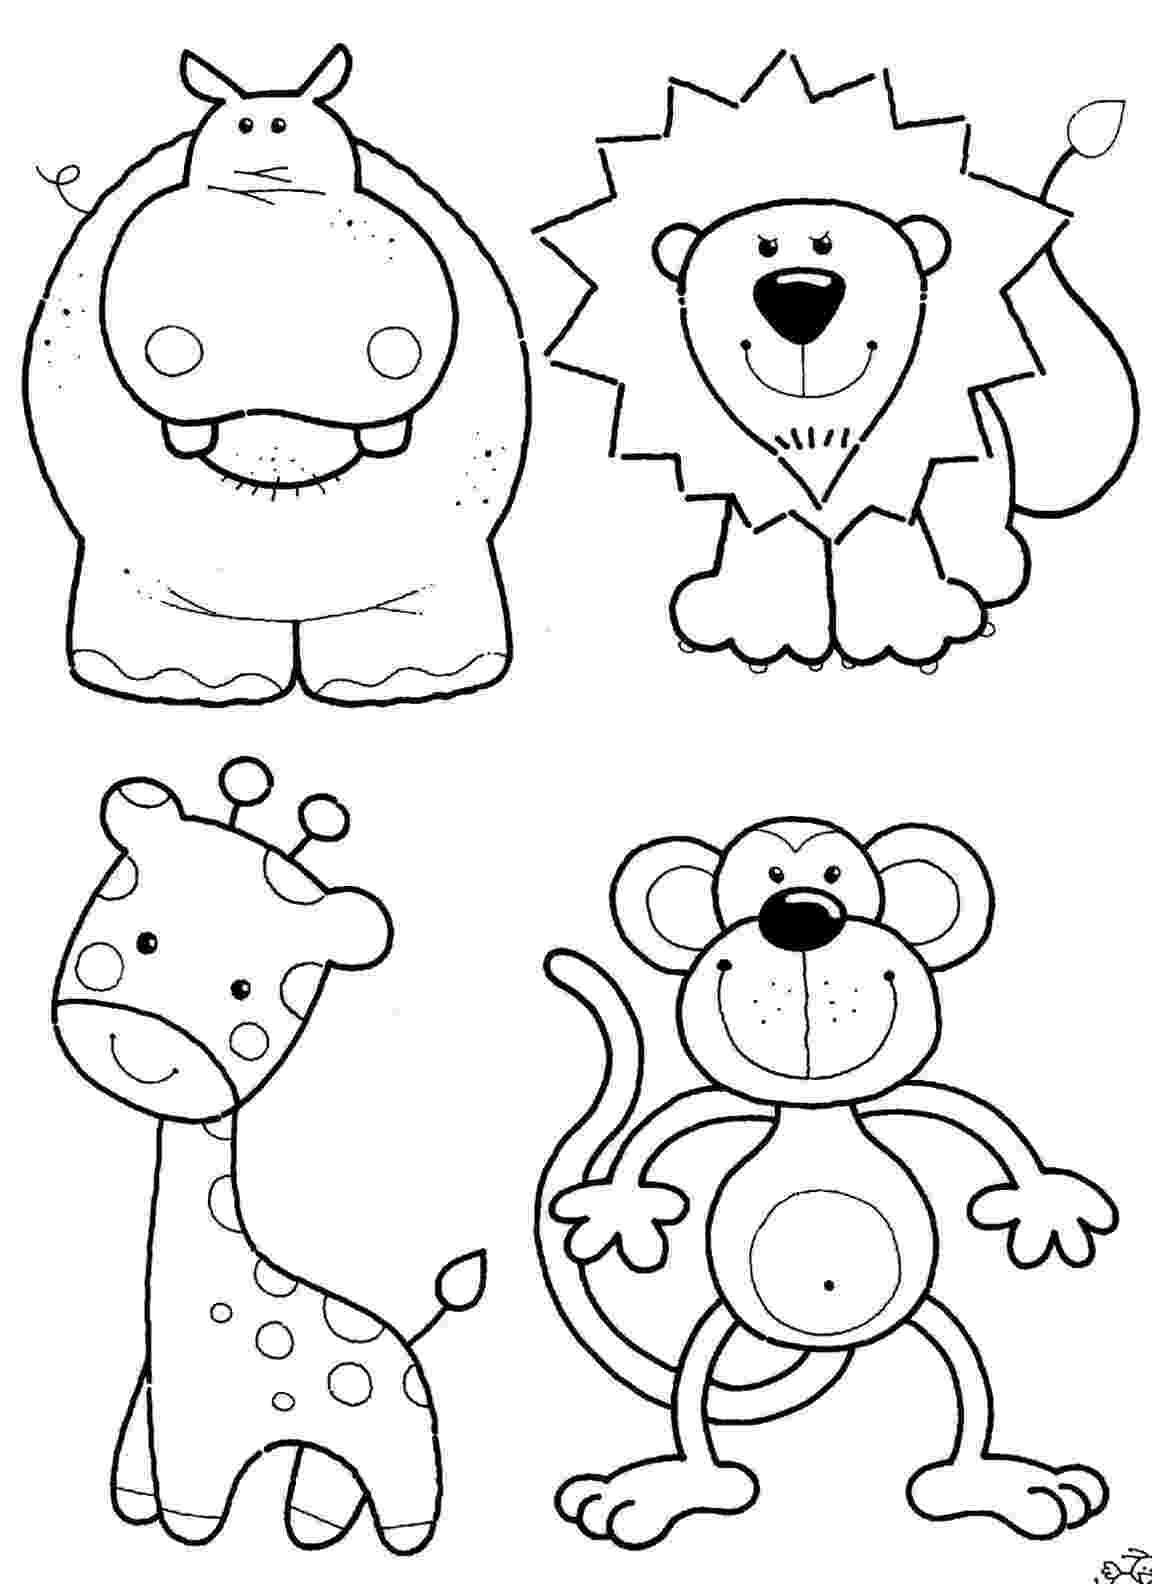 coloring pages of animals adult coloring pages animals best coloring pages for kids animals coloring of pages